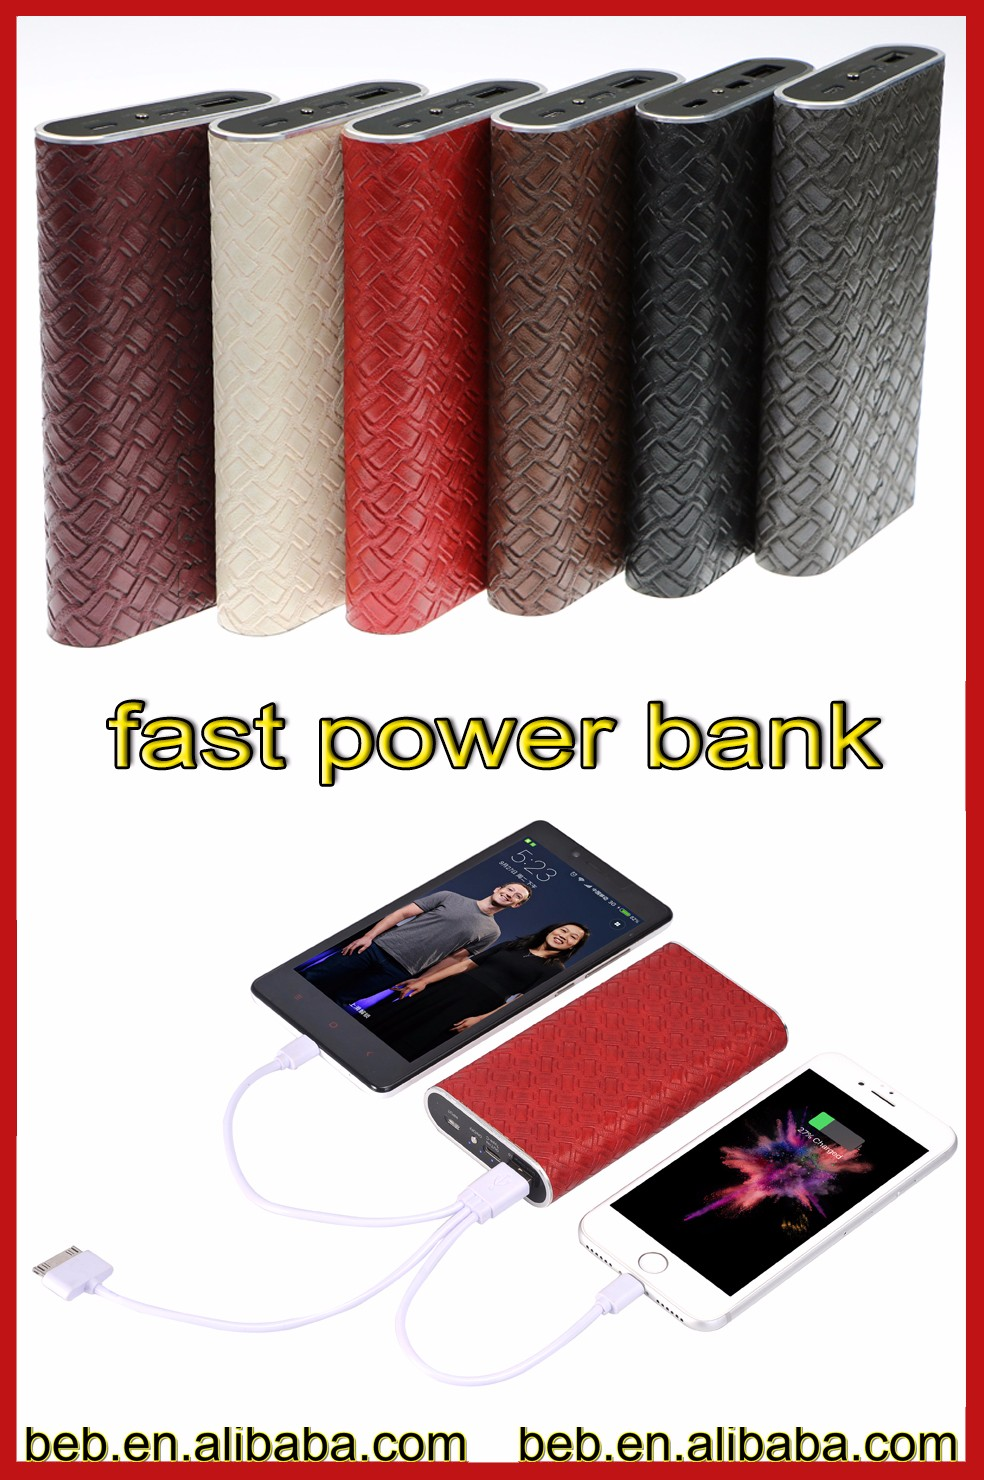 Manufacture 10000mah quick charge 3.0 power bank for iphone7 iphone6 emergency power bank